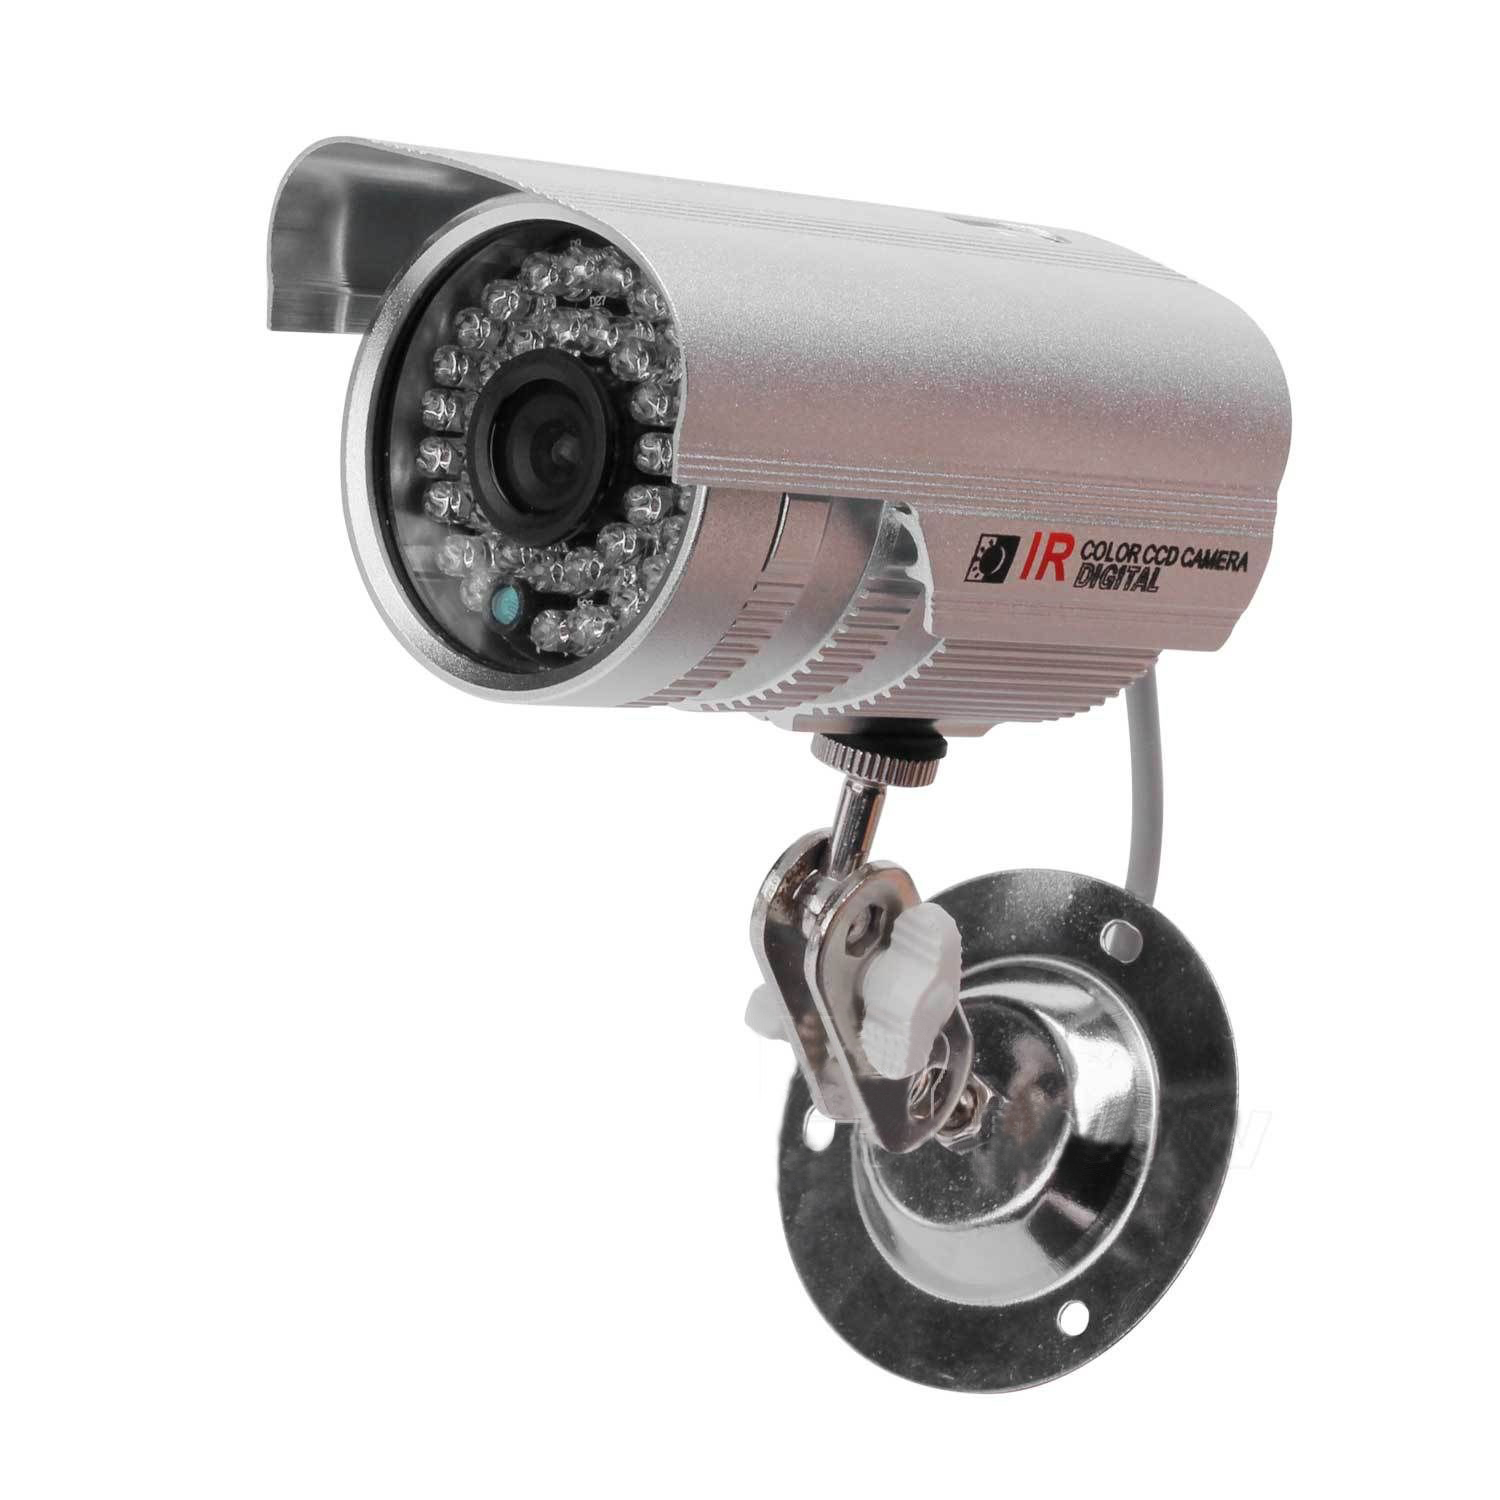 13x o917 1200tvl surveillance home security outdoor day night 36ir camera ebay - Exterior surveillance cameras for home ...